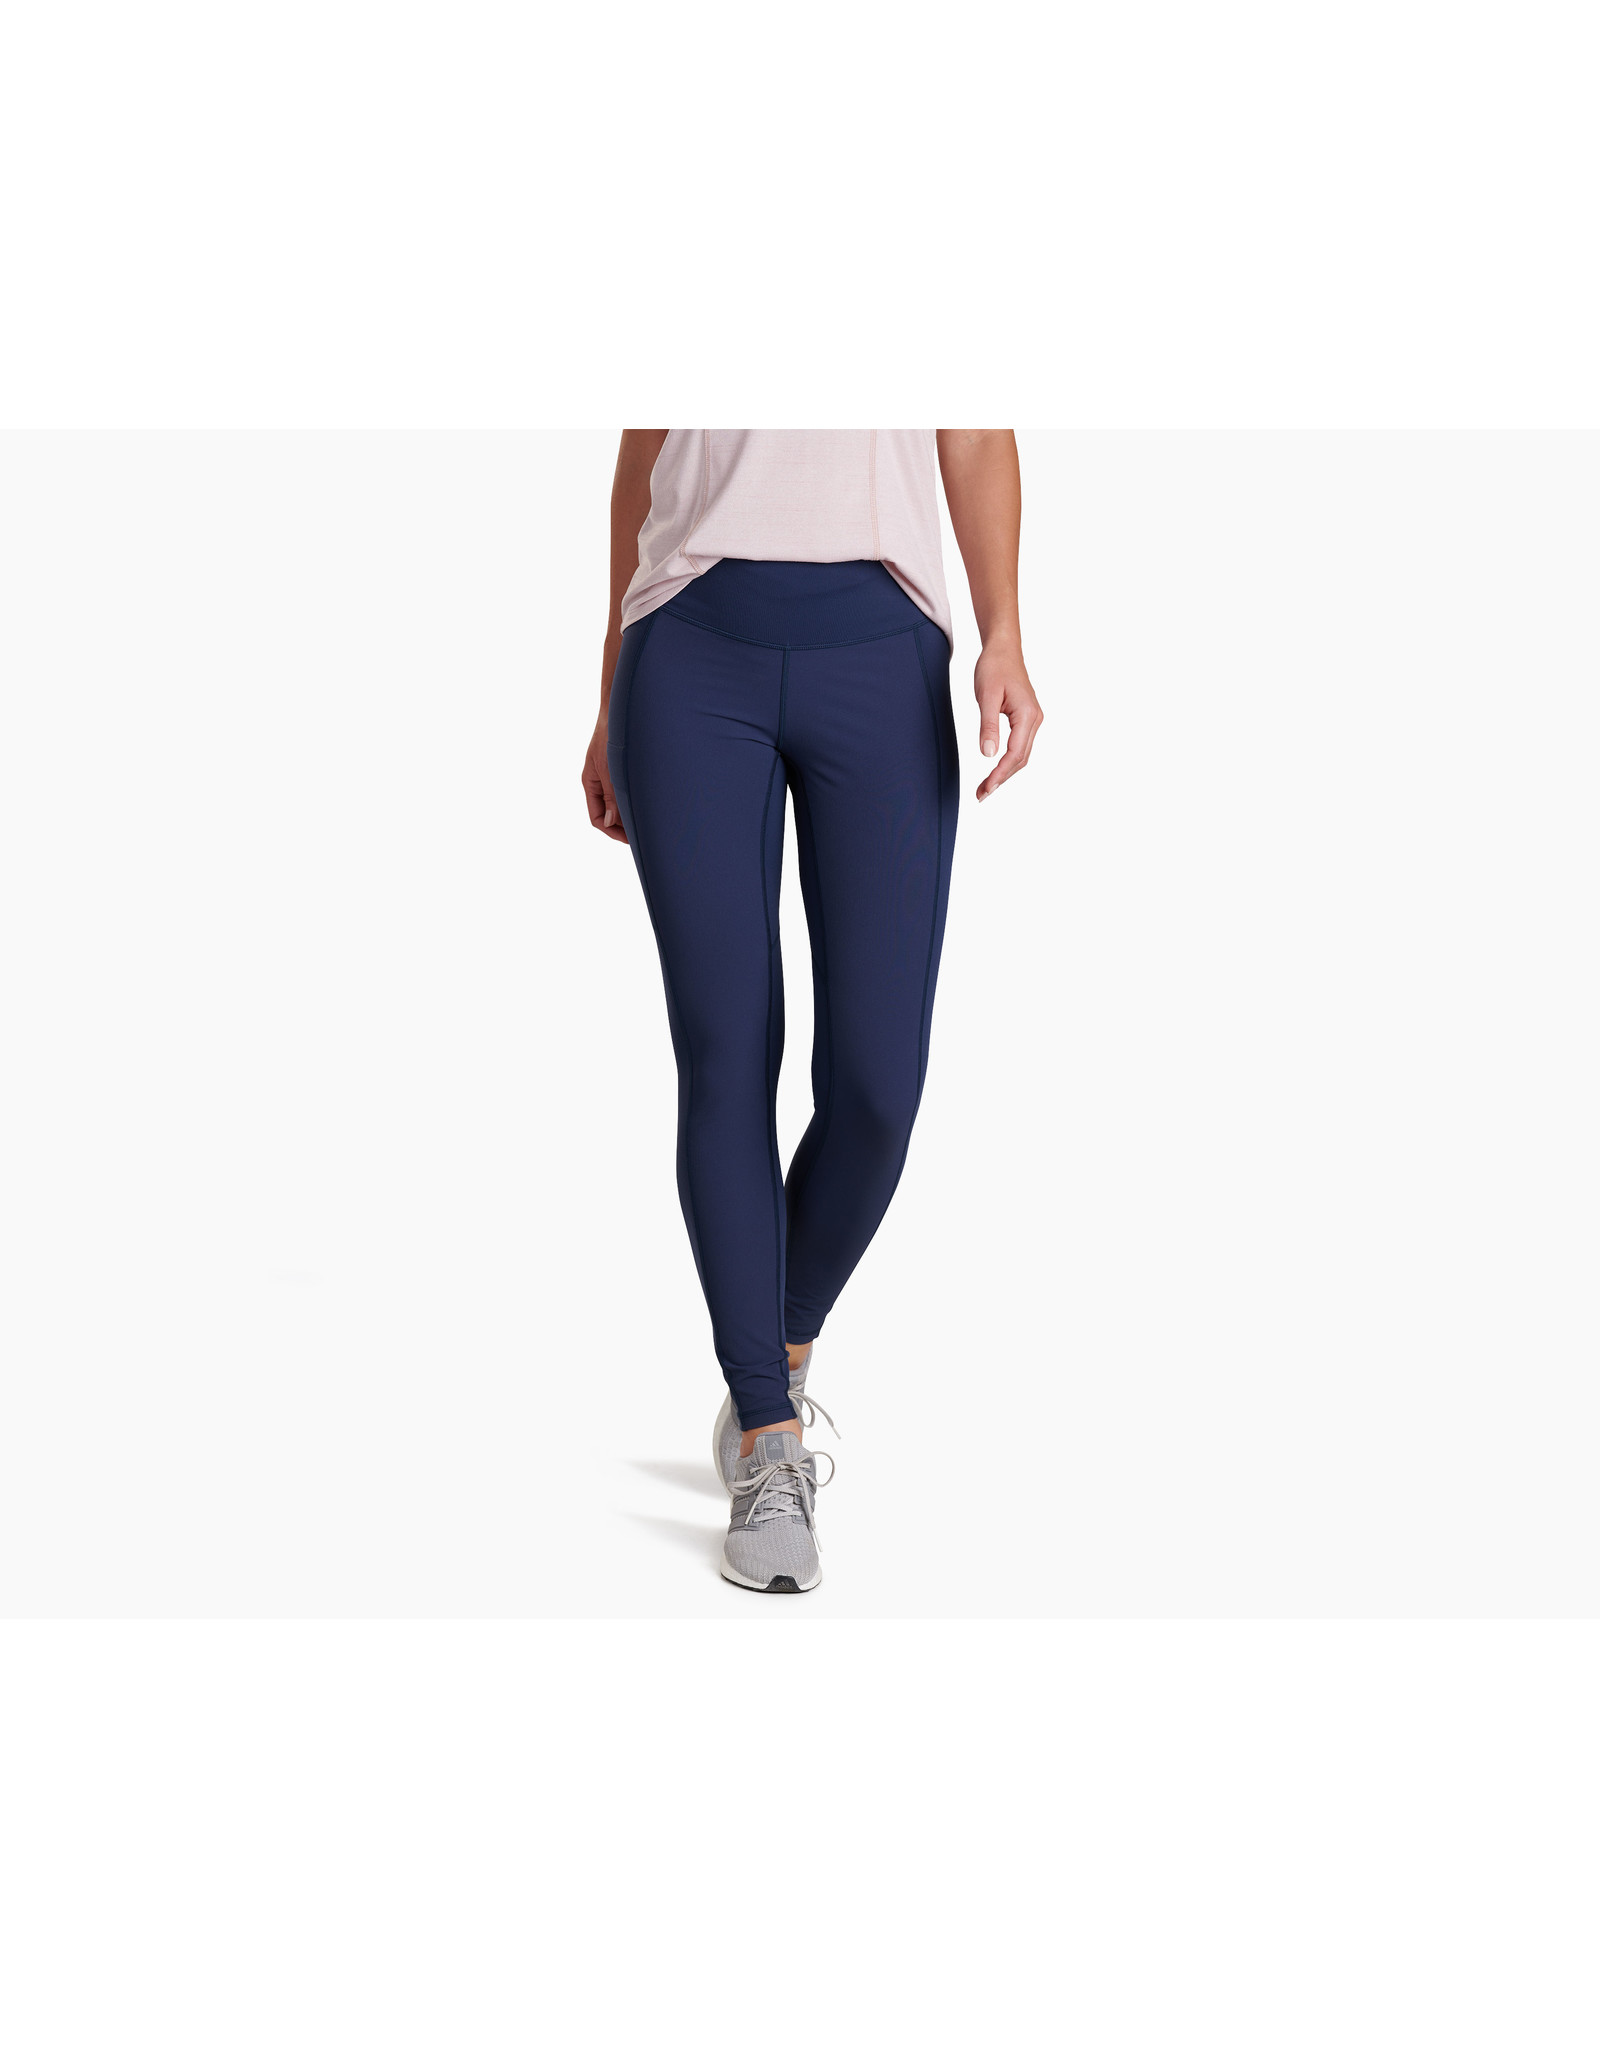 Kuhl Travrse Legging